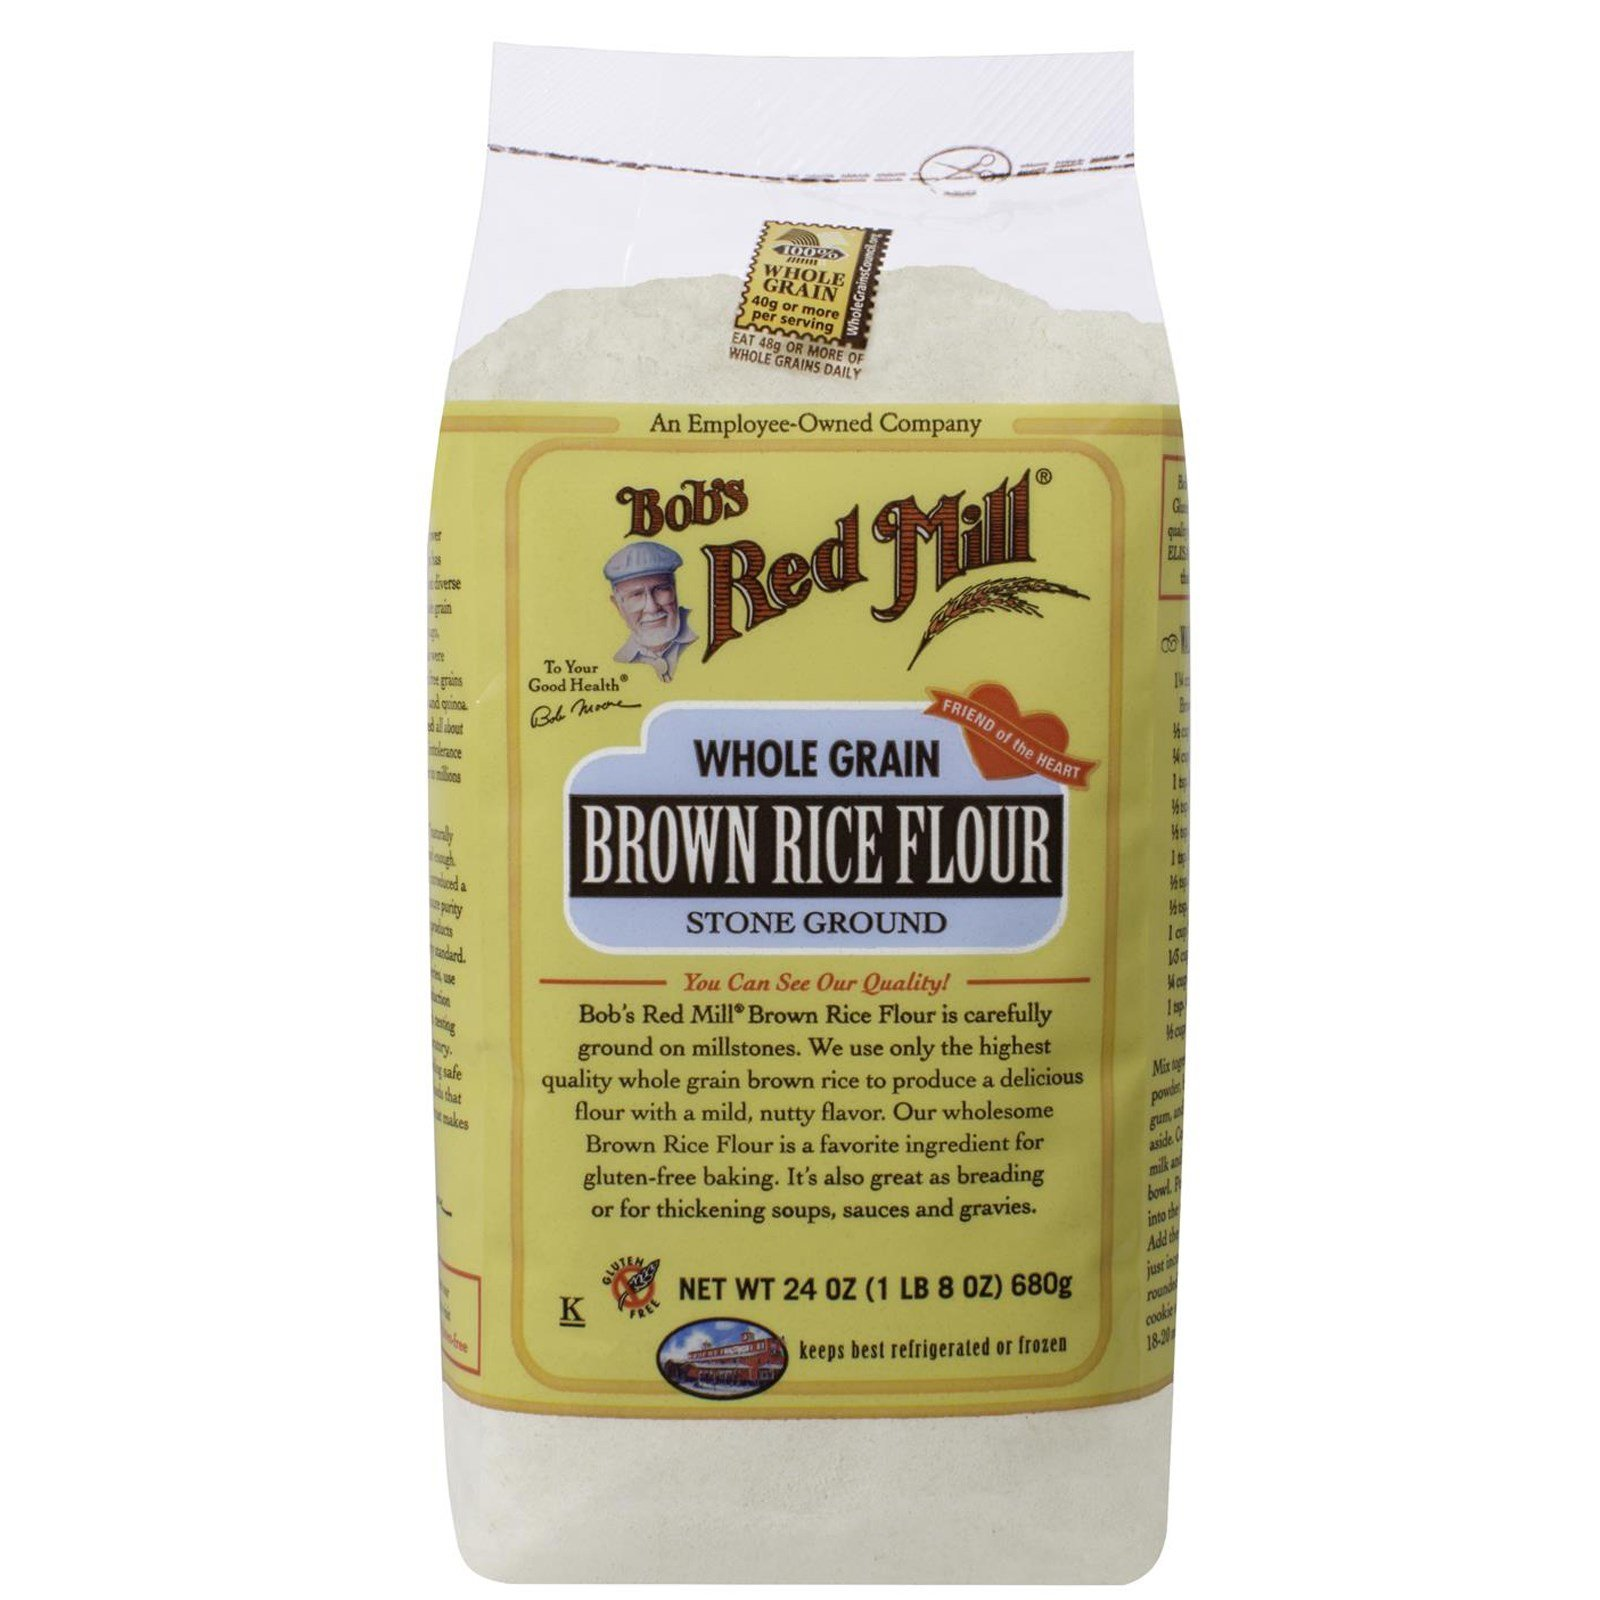 Bob's Red Mill, Whole Grain Brown Rice Flour, 24 oz(Pack of 4) by BOBS RED MILL